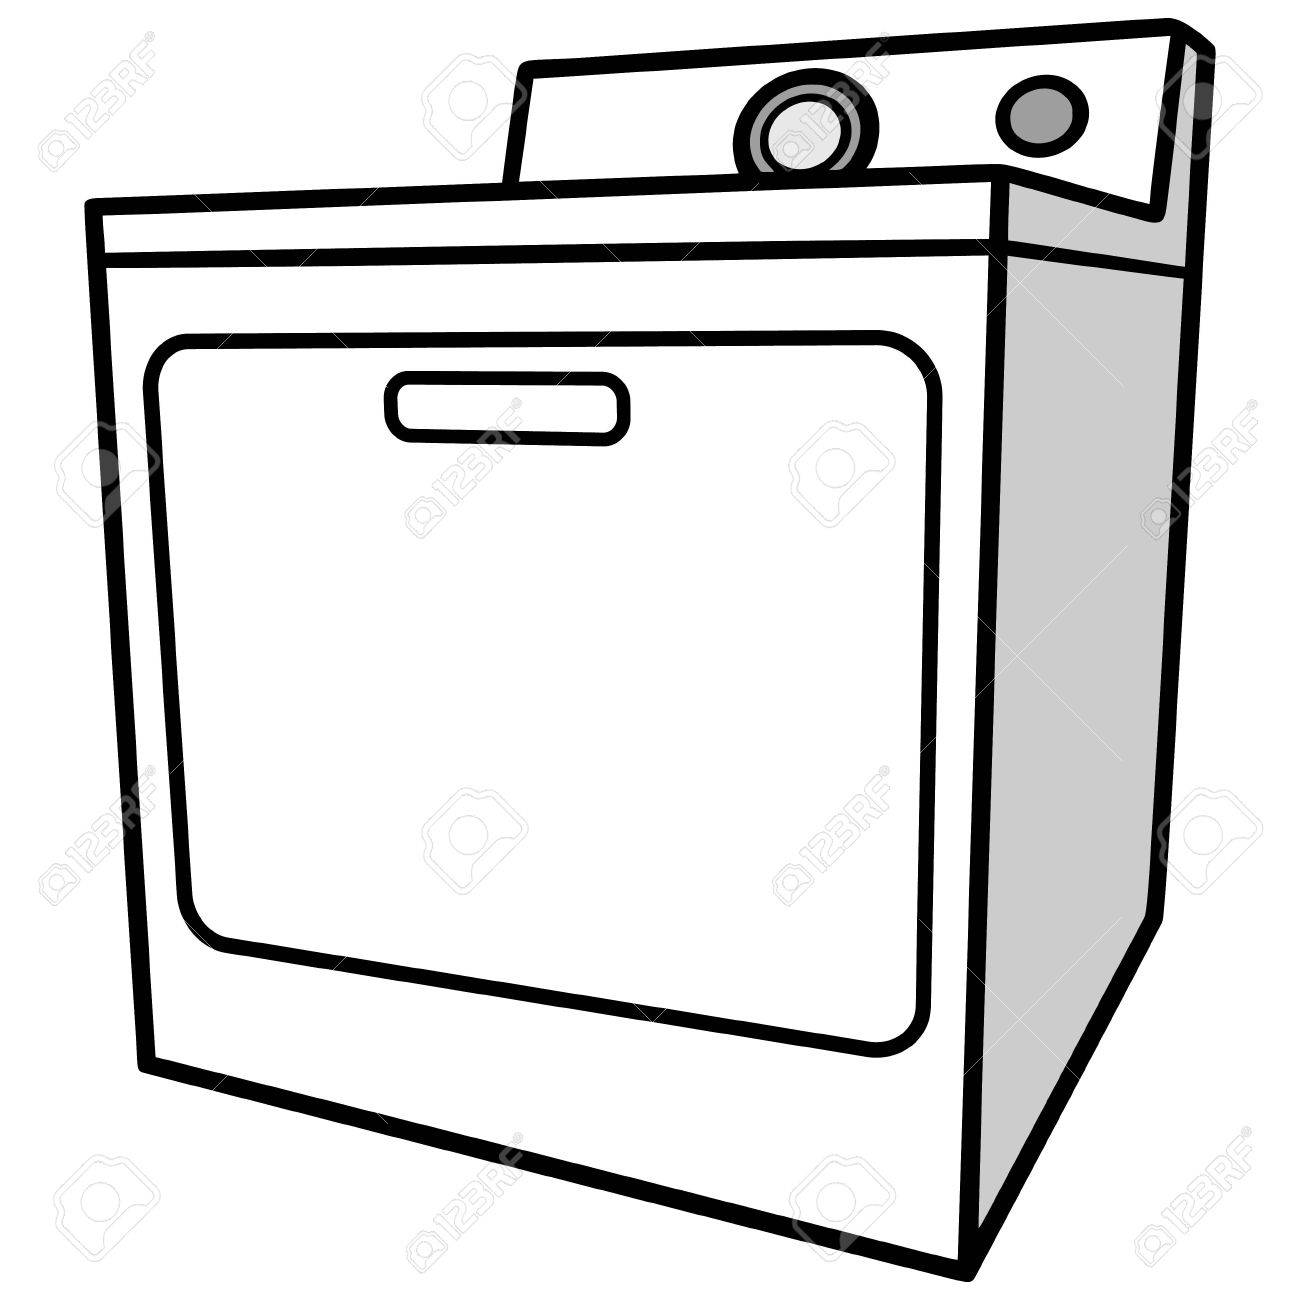 clipart free stock Dryer clipart. Station .